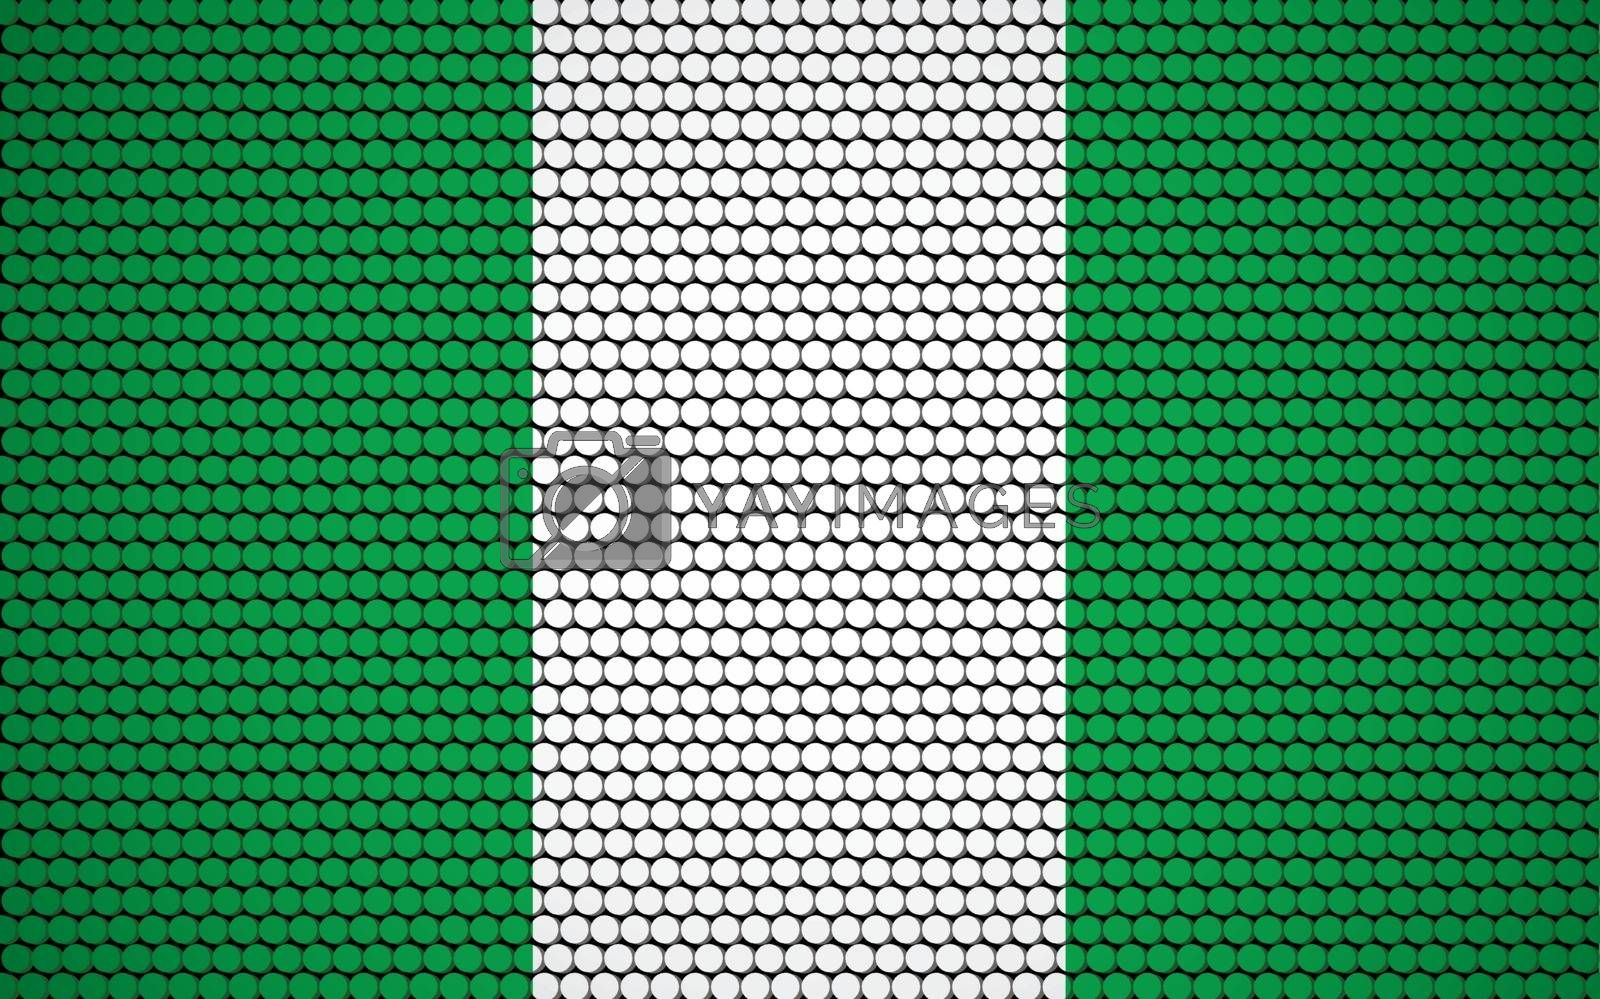 Abstract flag of Nigeria made of circles. Nigerian flag designed with colored dots giving it a modern and futuristic abstract look.